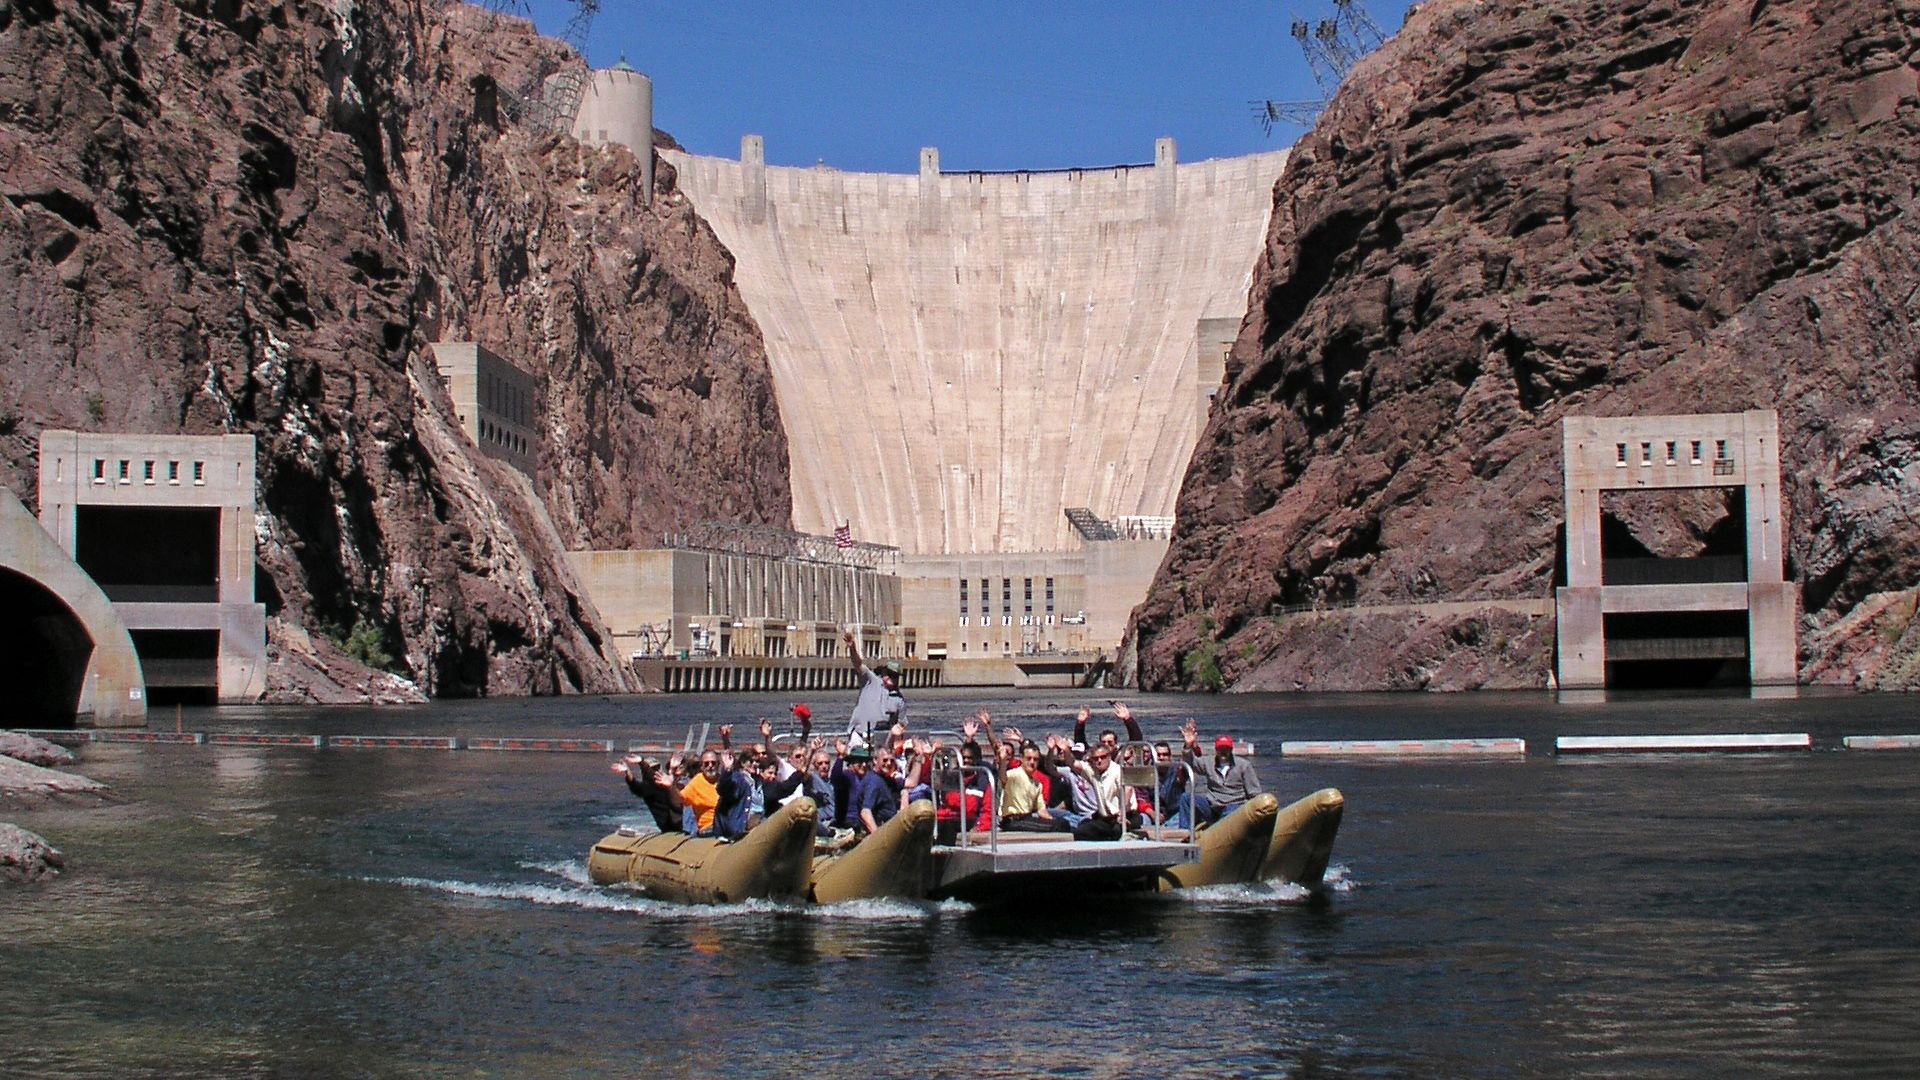 view of hoover dam front river in nevada